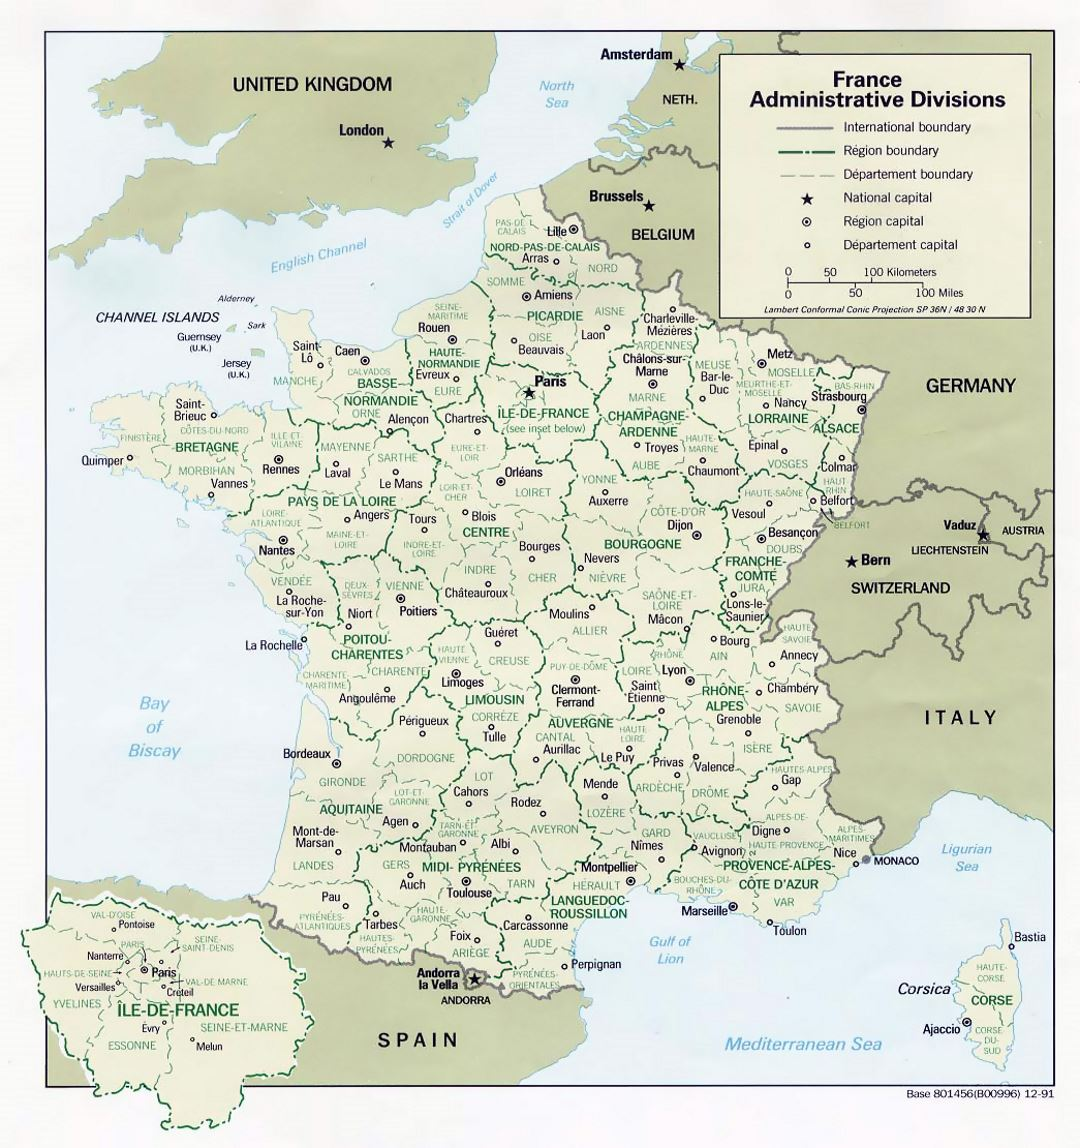 Large administrative divisions map of France - 1991